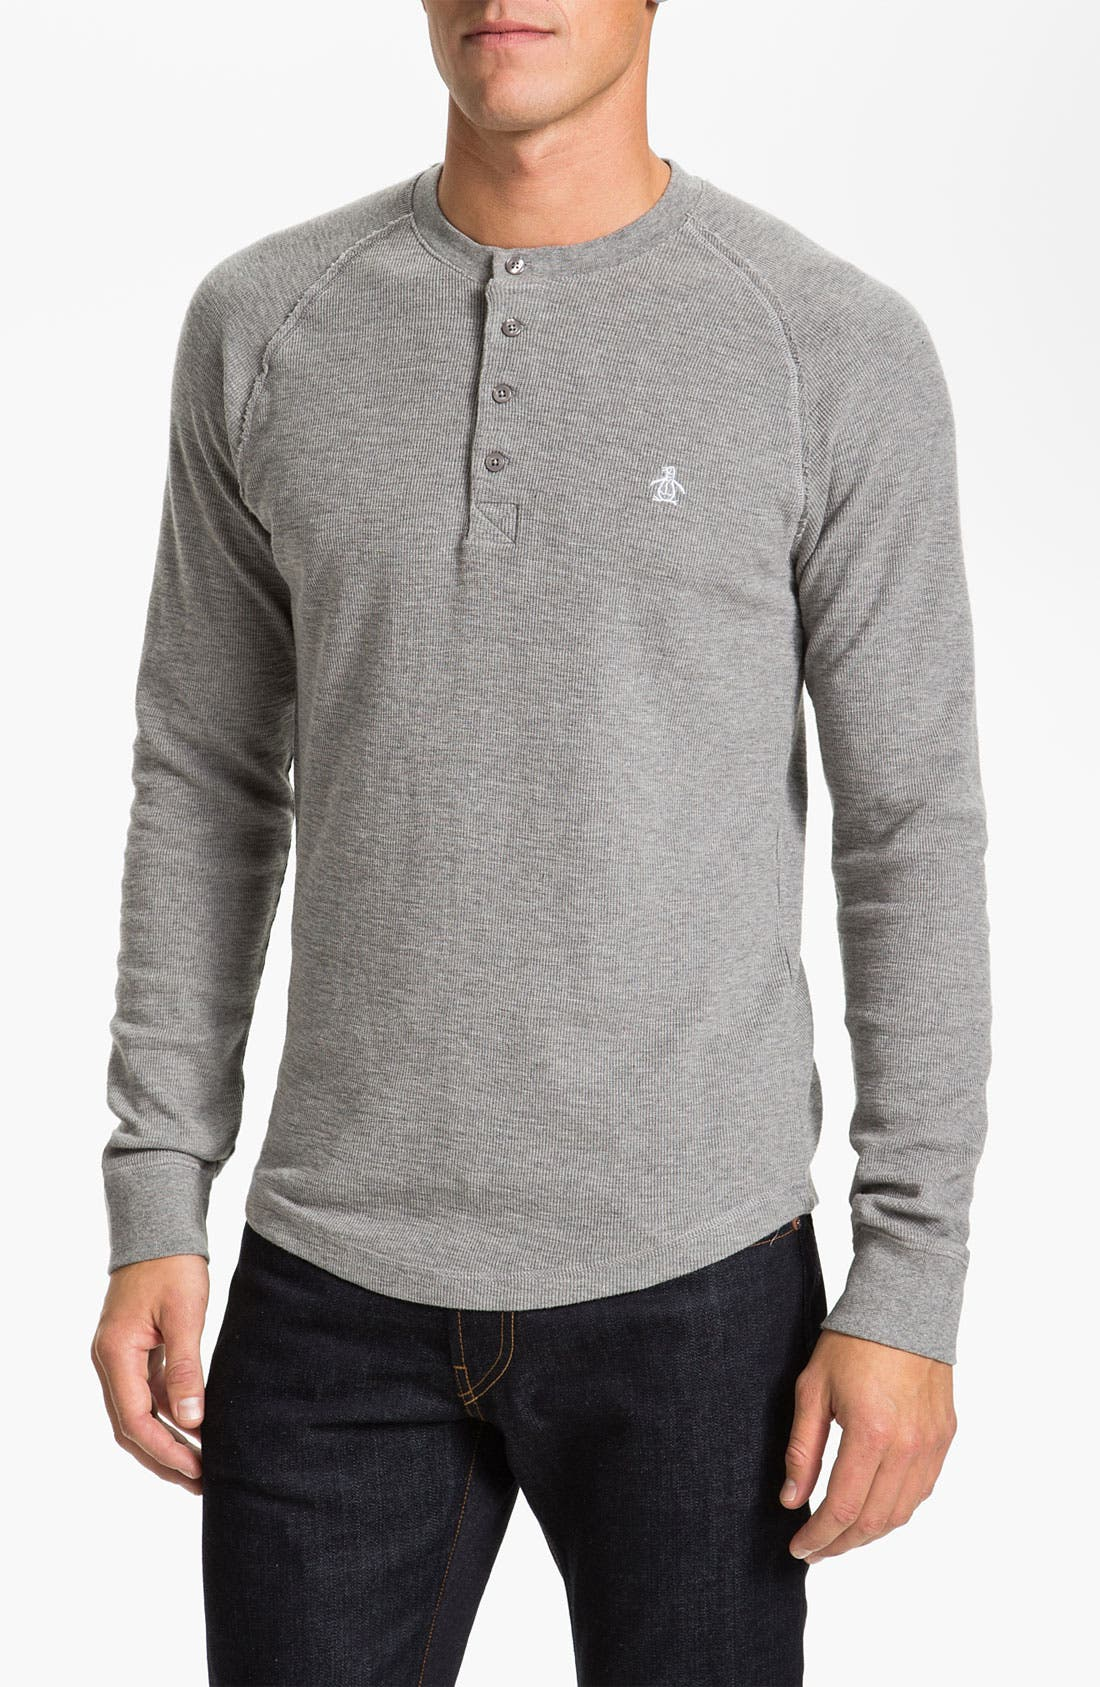 Main Image - Original Penguin Thermal Cotton Henley